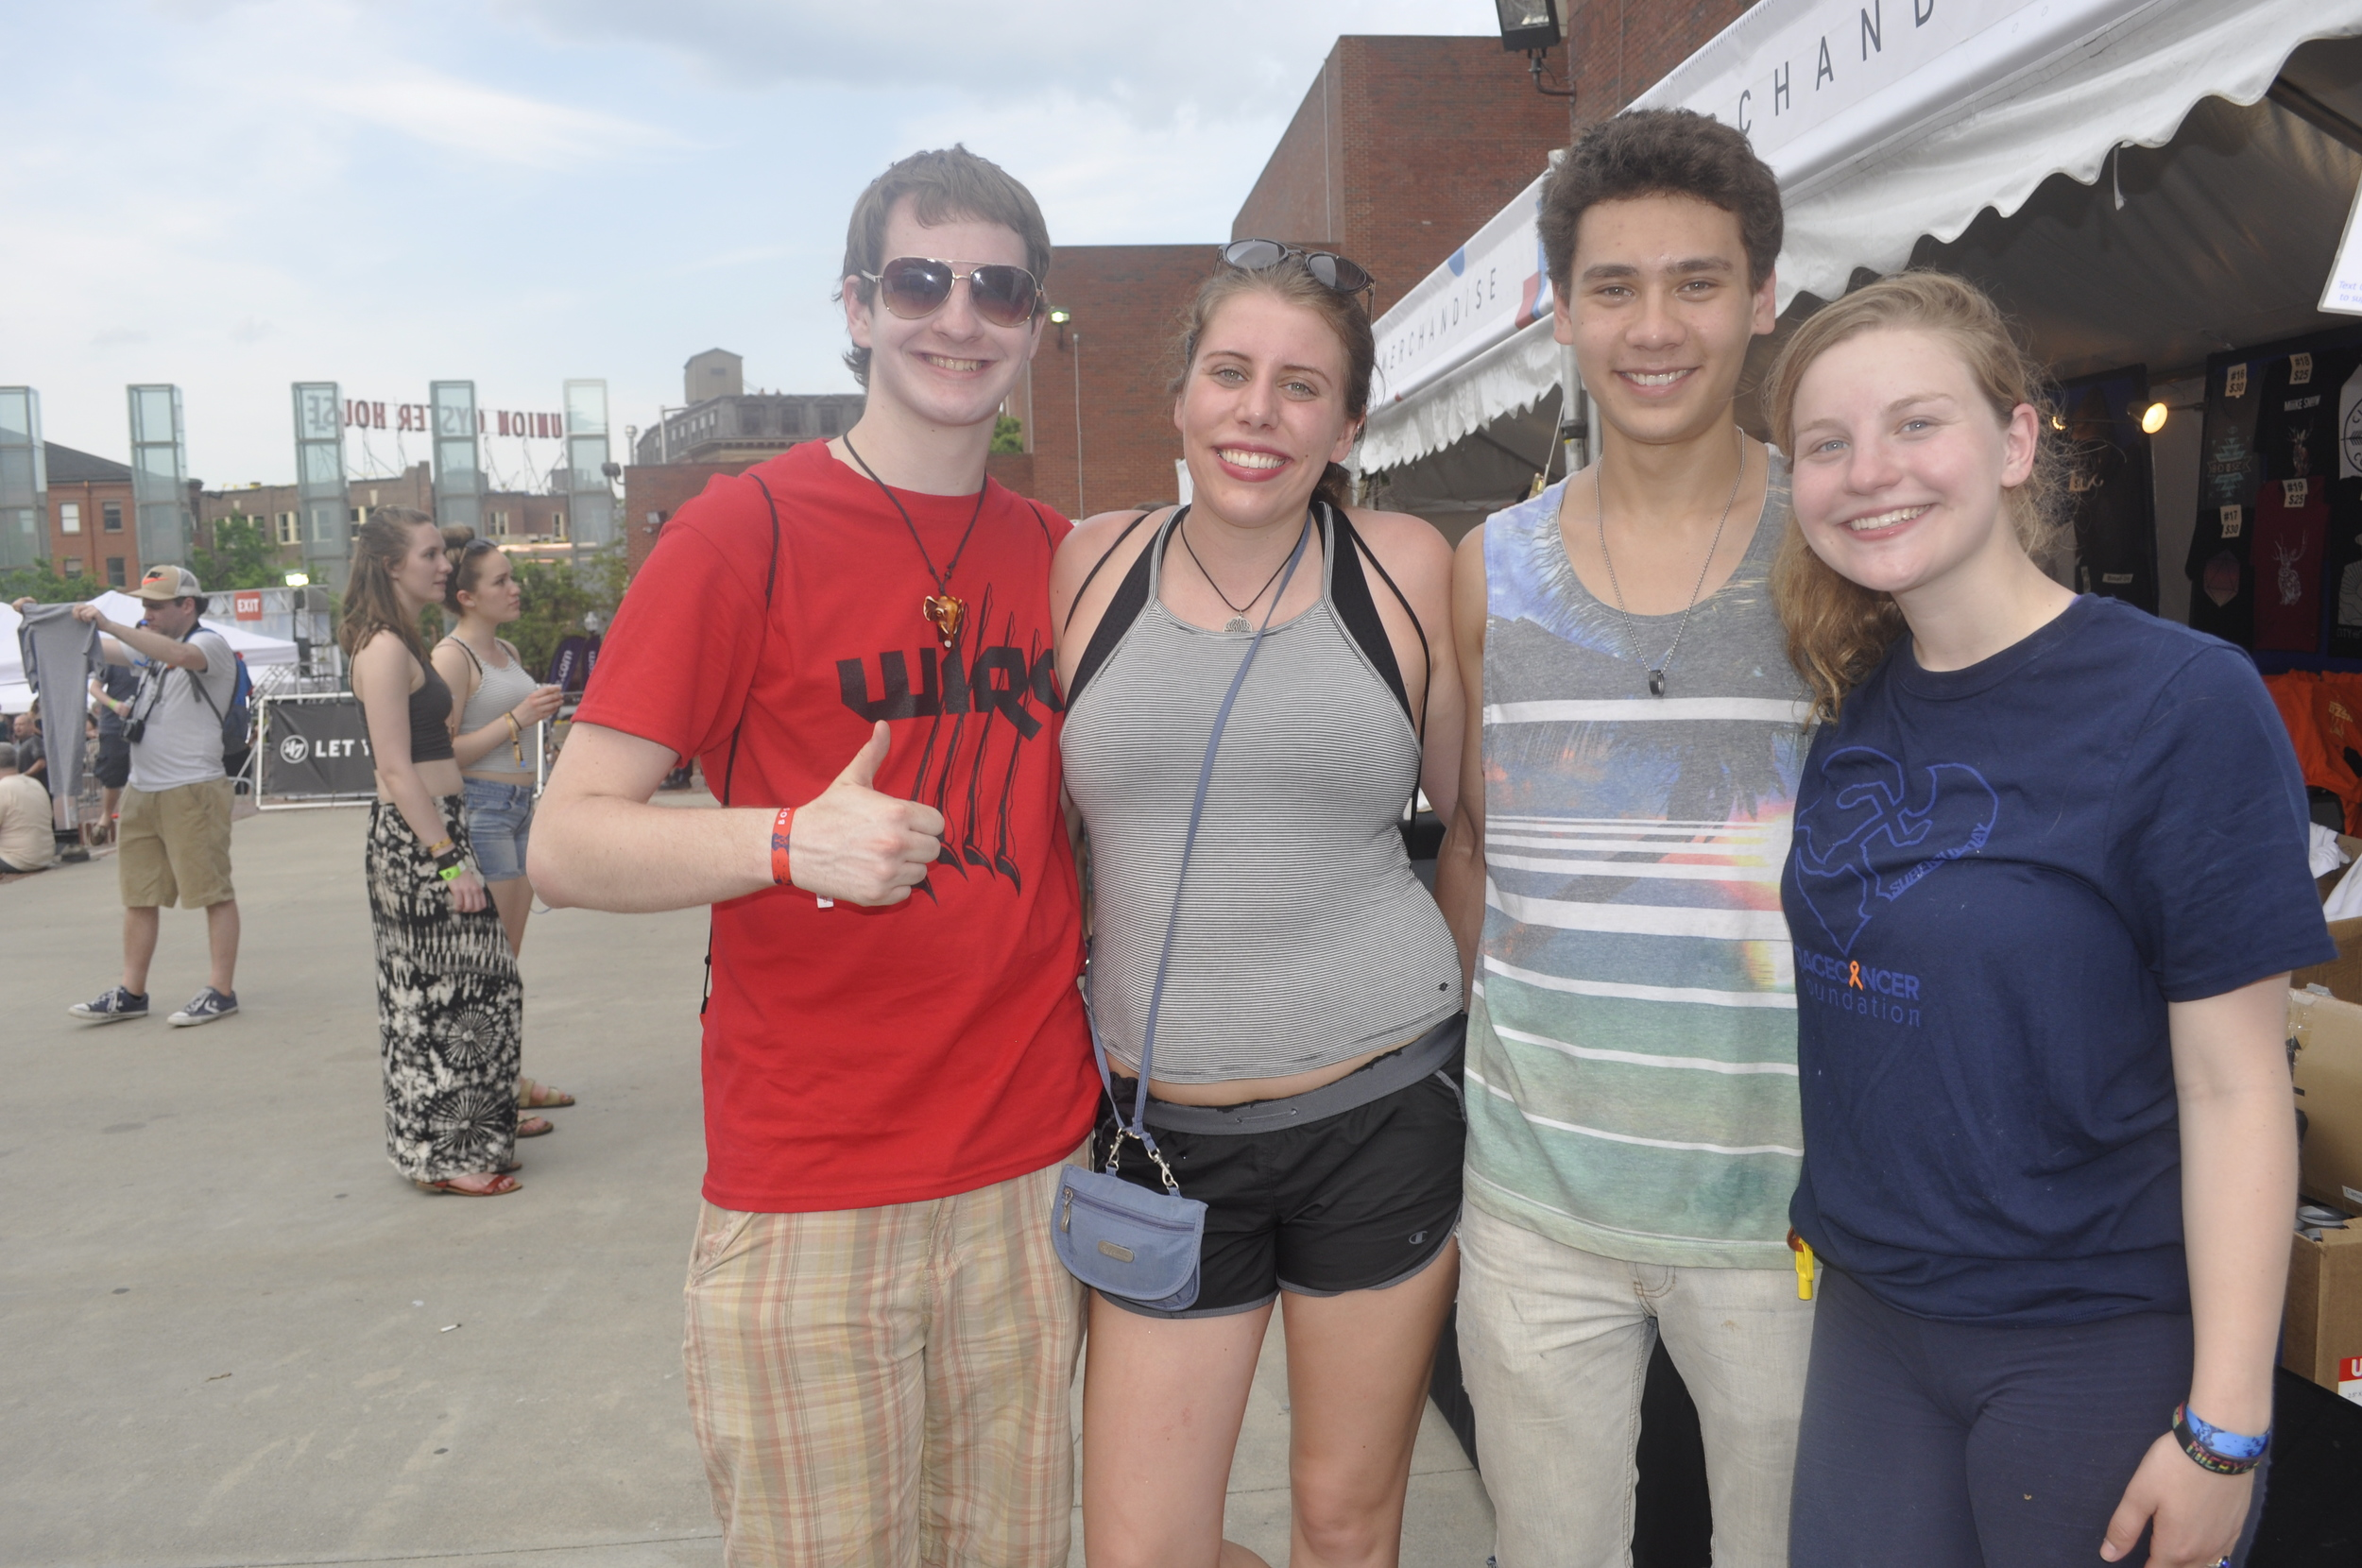 From left to right: Me, Mariah Cronin, Matt Chan, Micayla Riven